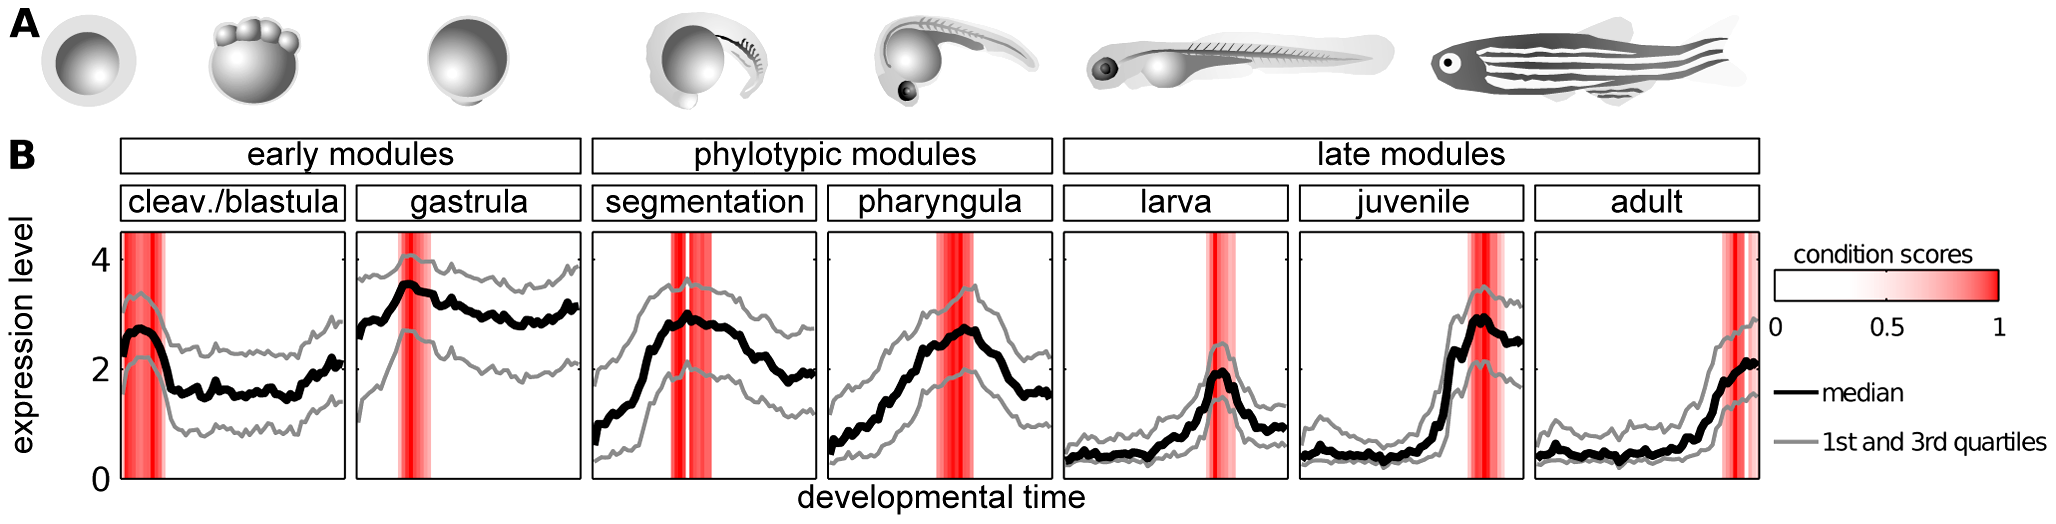 Modules of genes with time-specific expression during zebrafish development.